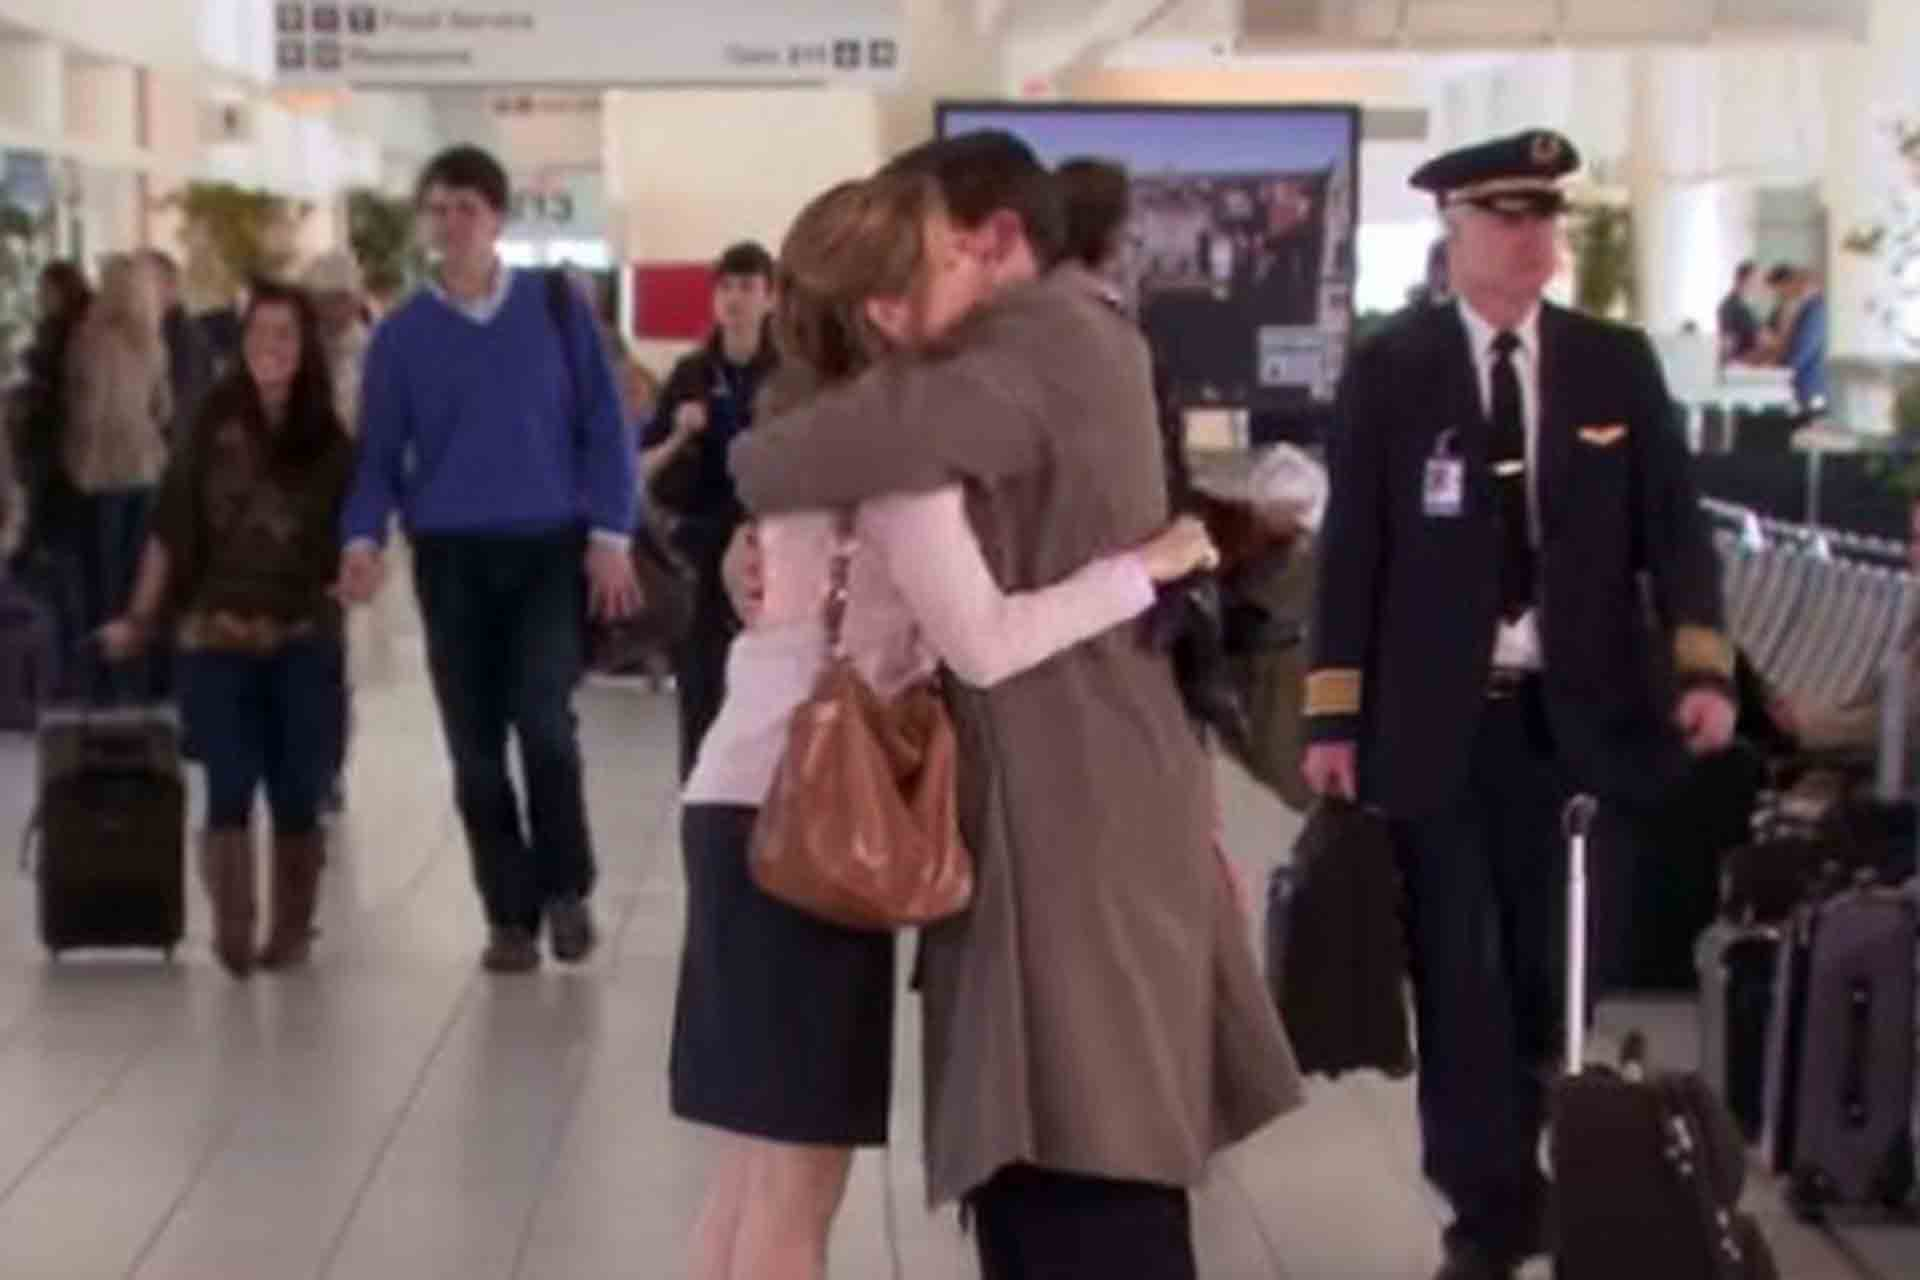 Pam hugs Michael at the airport before he leaves.